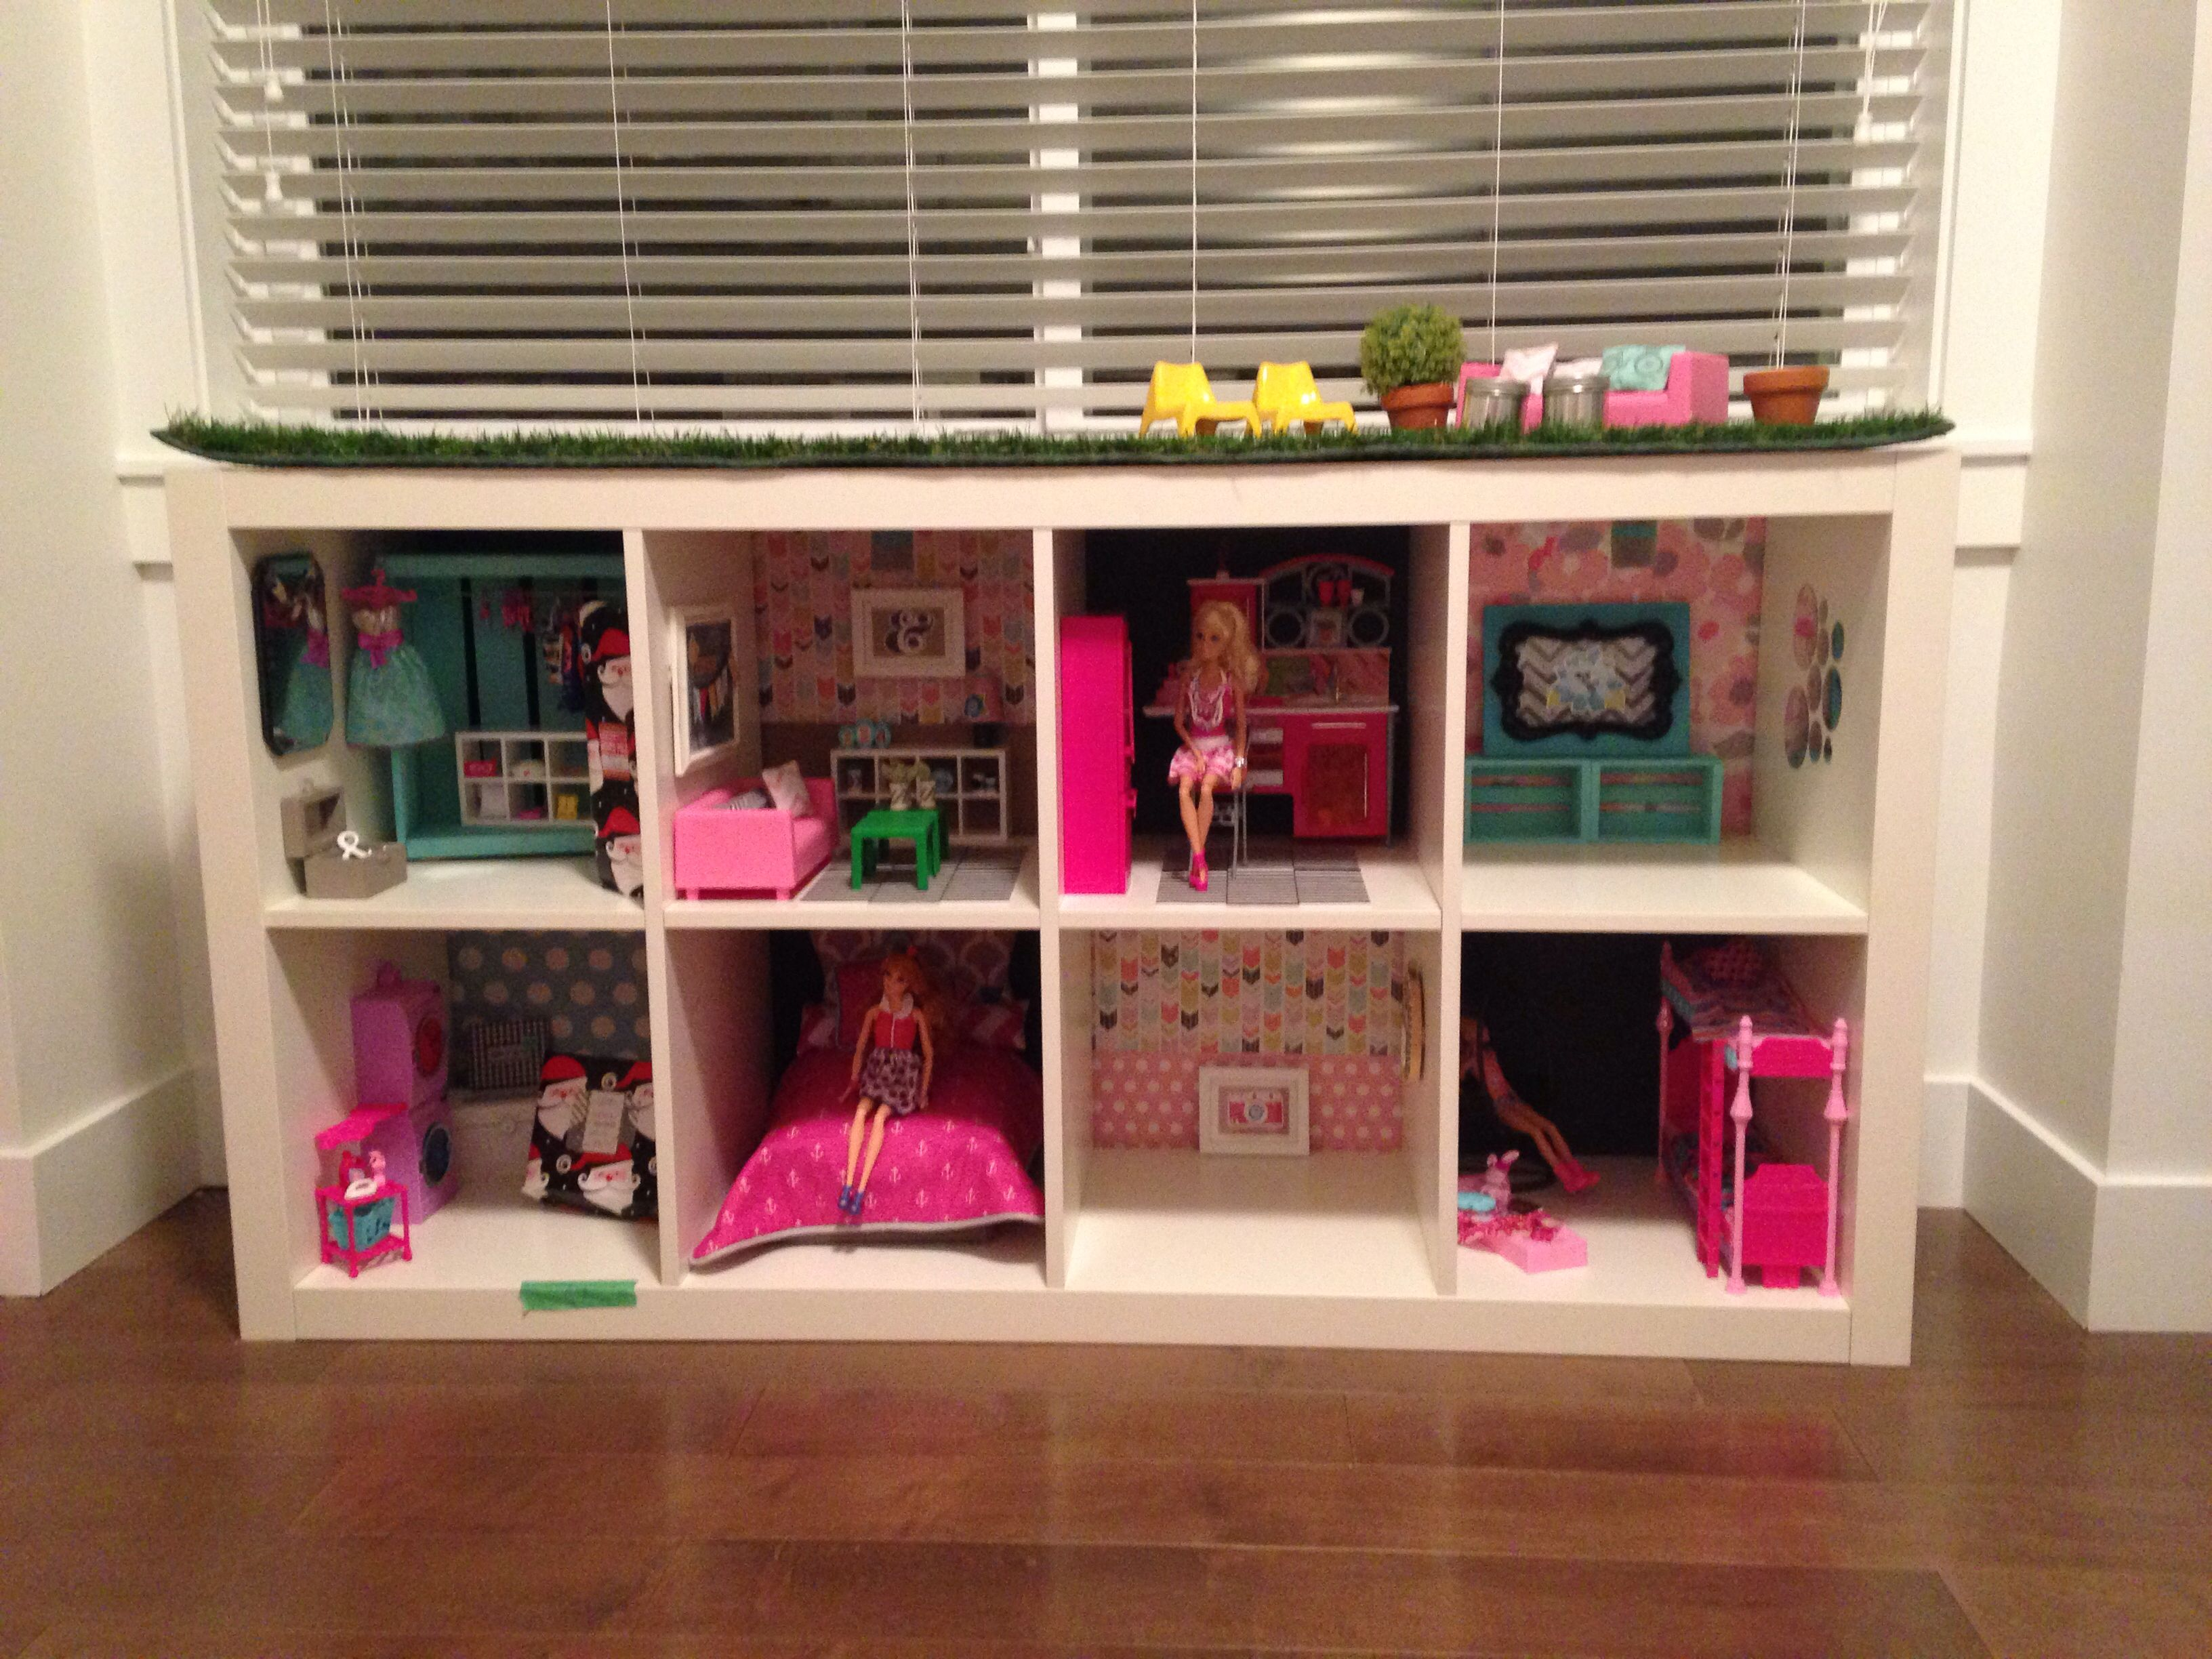 Sage's Dreamhouse. Created out of an Ikea Expedit shelf